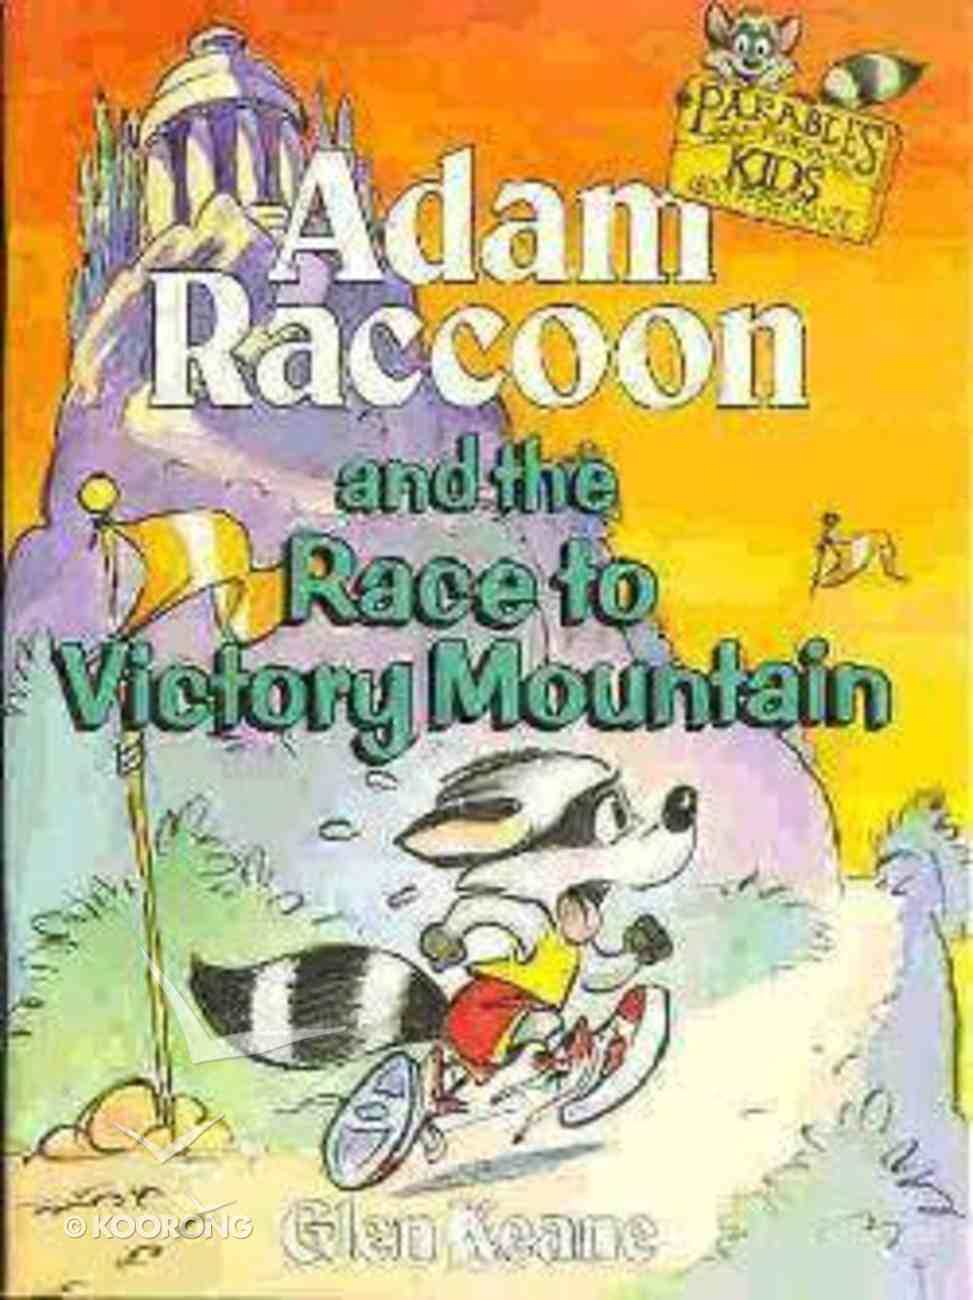 Adam Raccoon and the Race to Victory Mountain Paperback